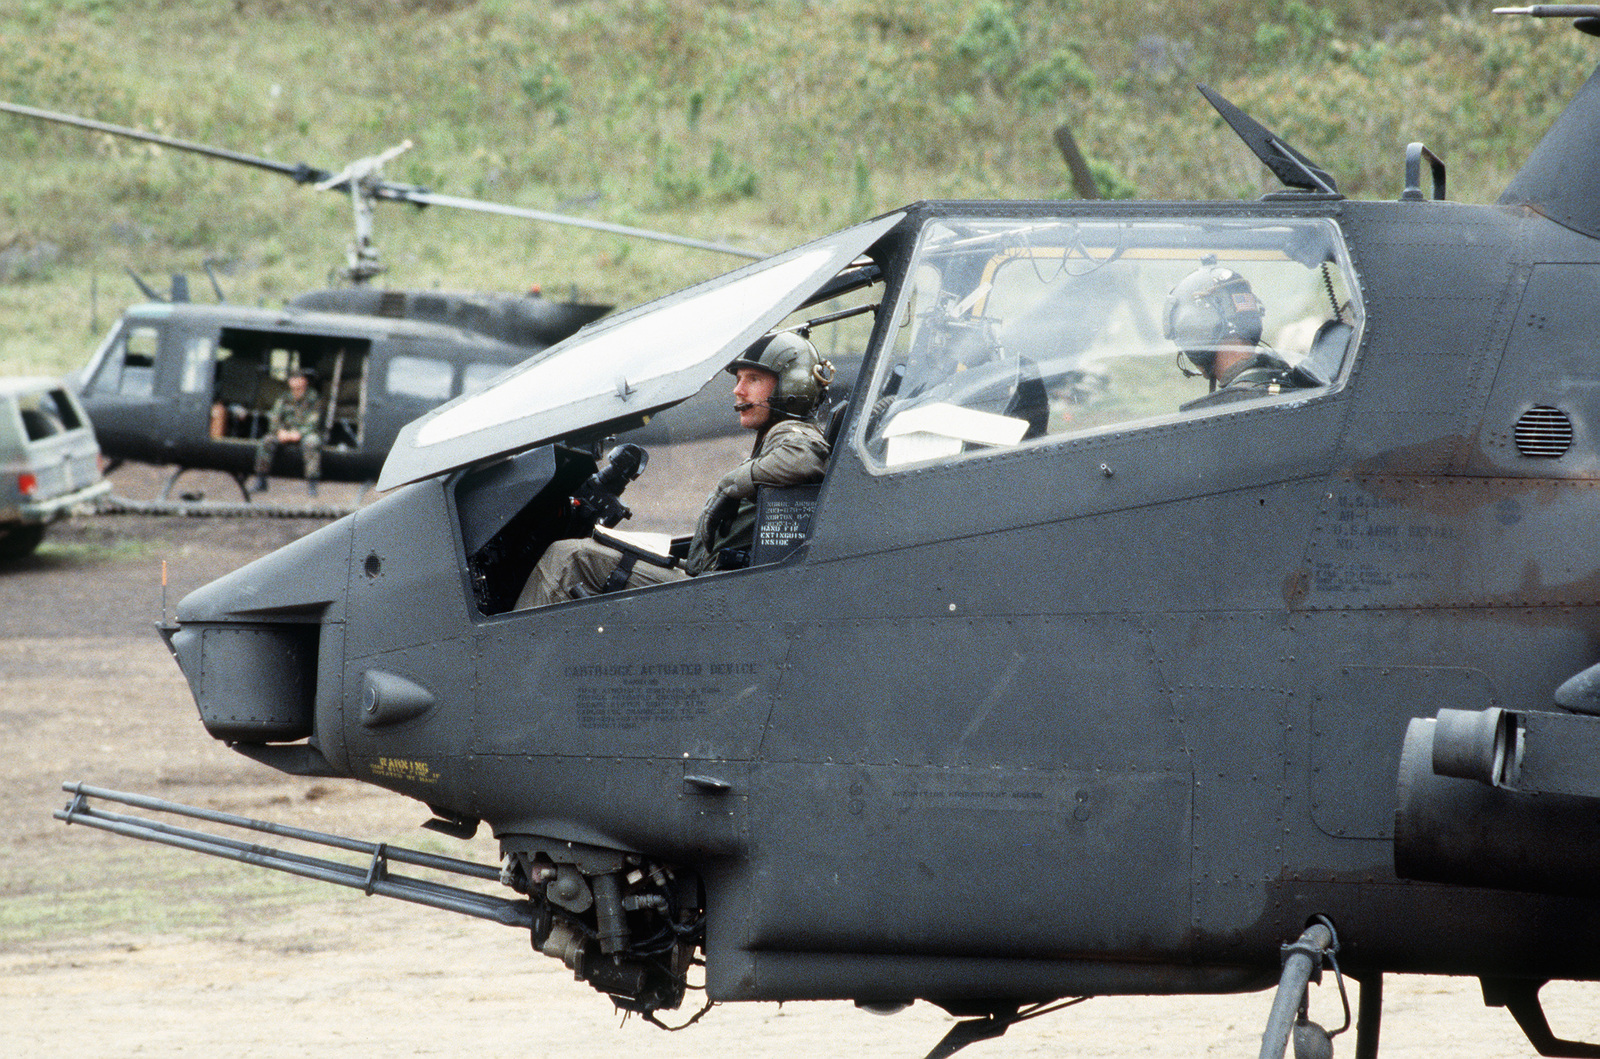 AH-1 Cobra helicopters in the field during Task Force III, a civic action project in which the West Virginia Army National Guard is constructing a road network and providing health and veterinary services to inhabitants of the Puenta Grande area